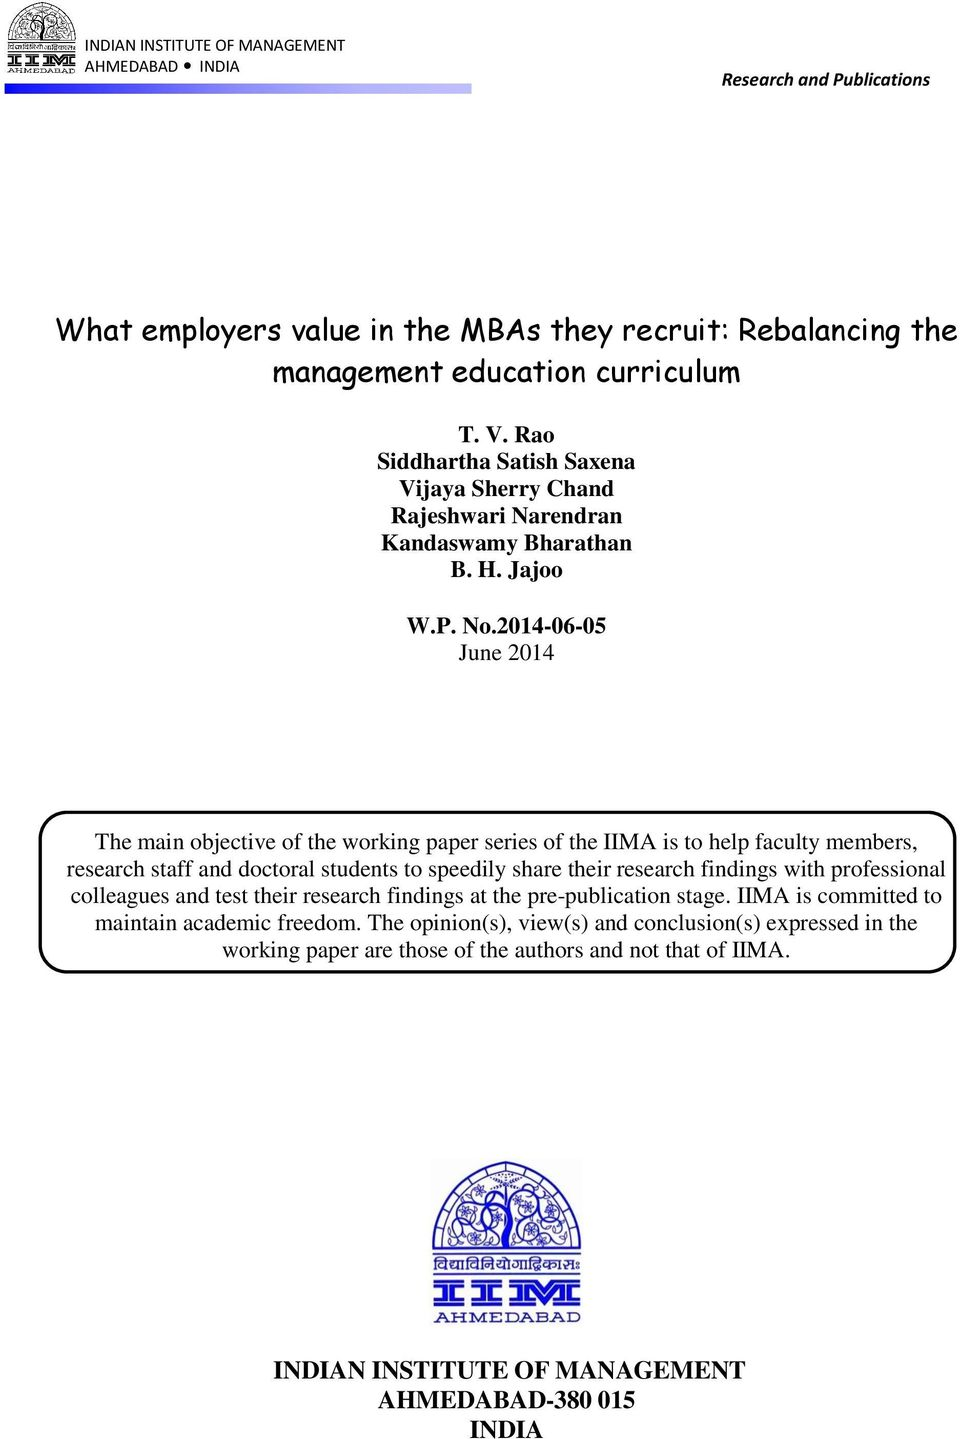 2014-06-05 June 2014 The main objective of the working paper series of the IIMA is to help faculty members, research staff and doctoral students to speedily share their research findings